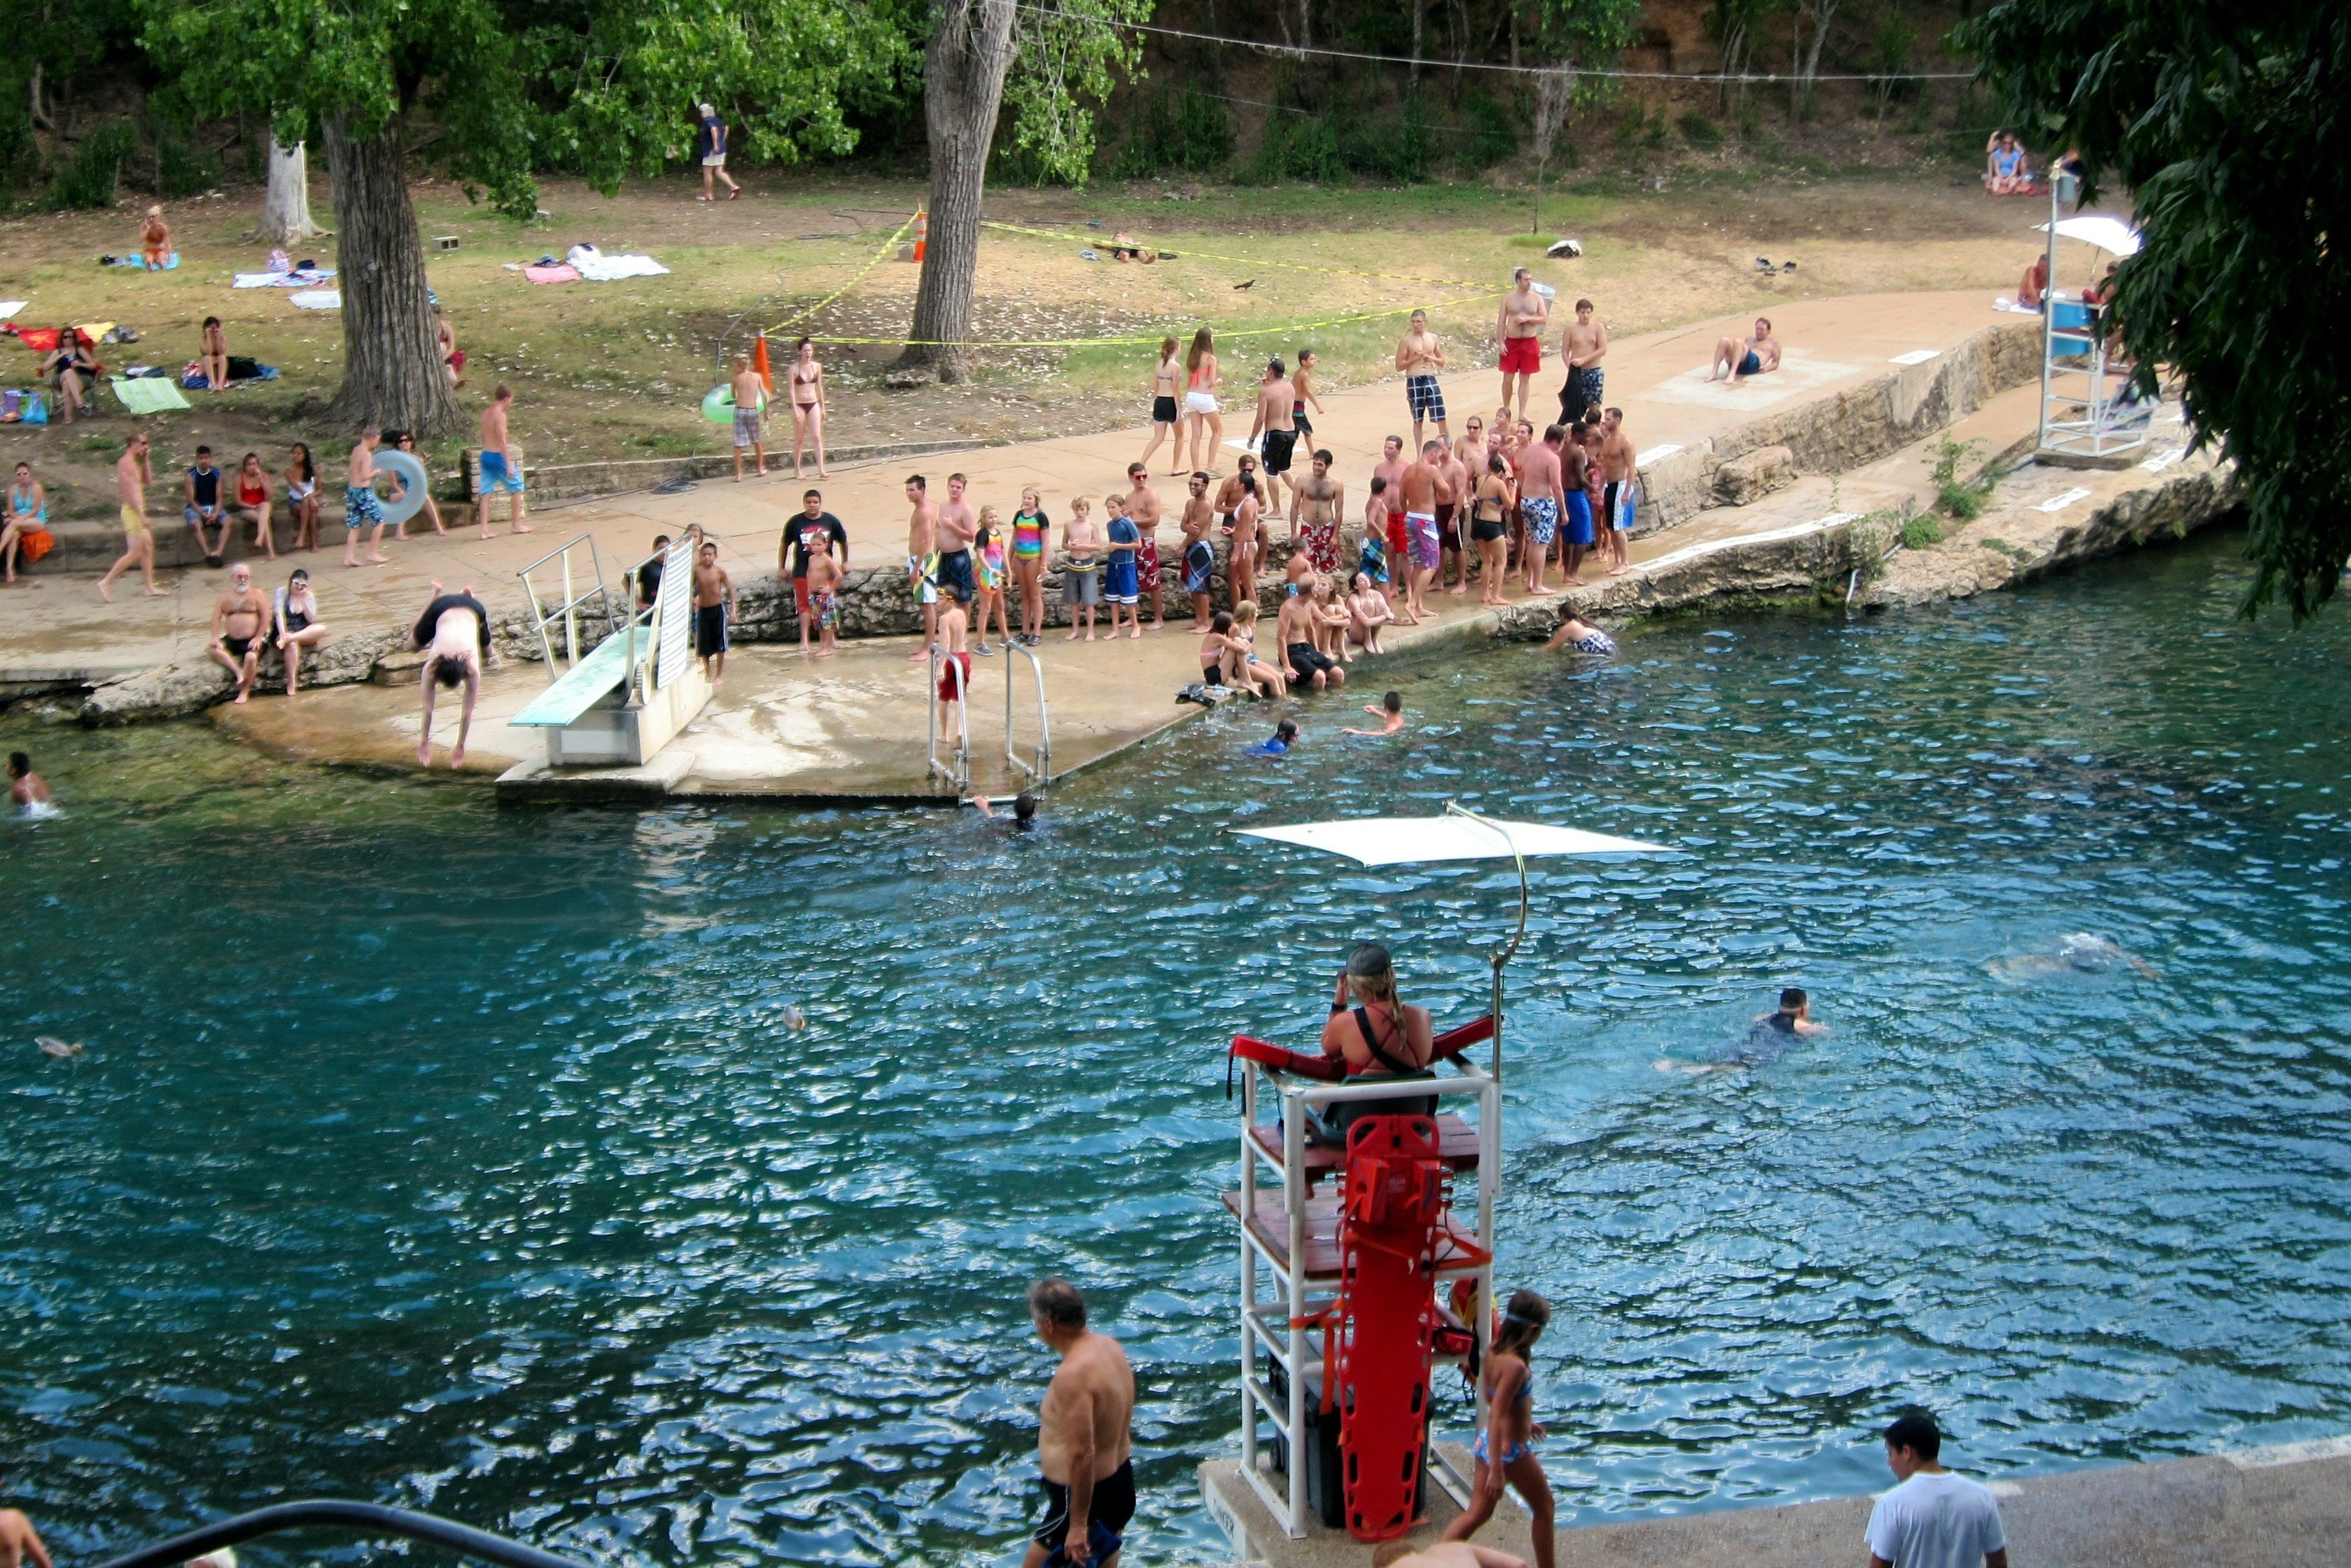 Trip Ideas water tree outdoor boating vehicle tourism vacation Boat Sea people endurance sports swimming pool swimming several